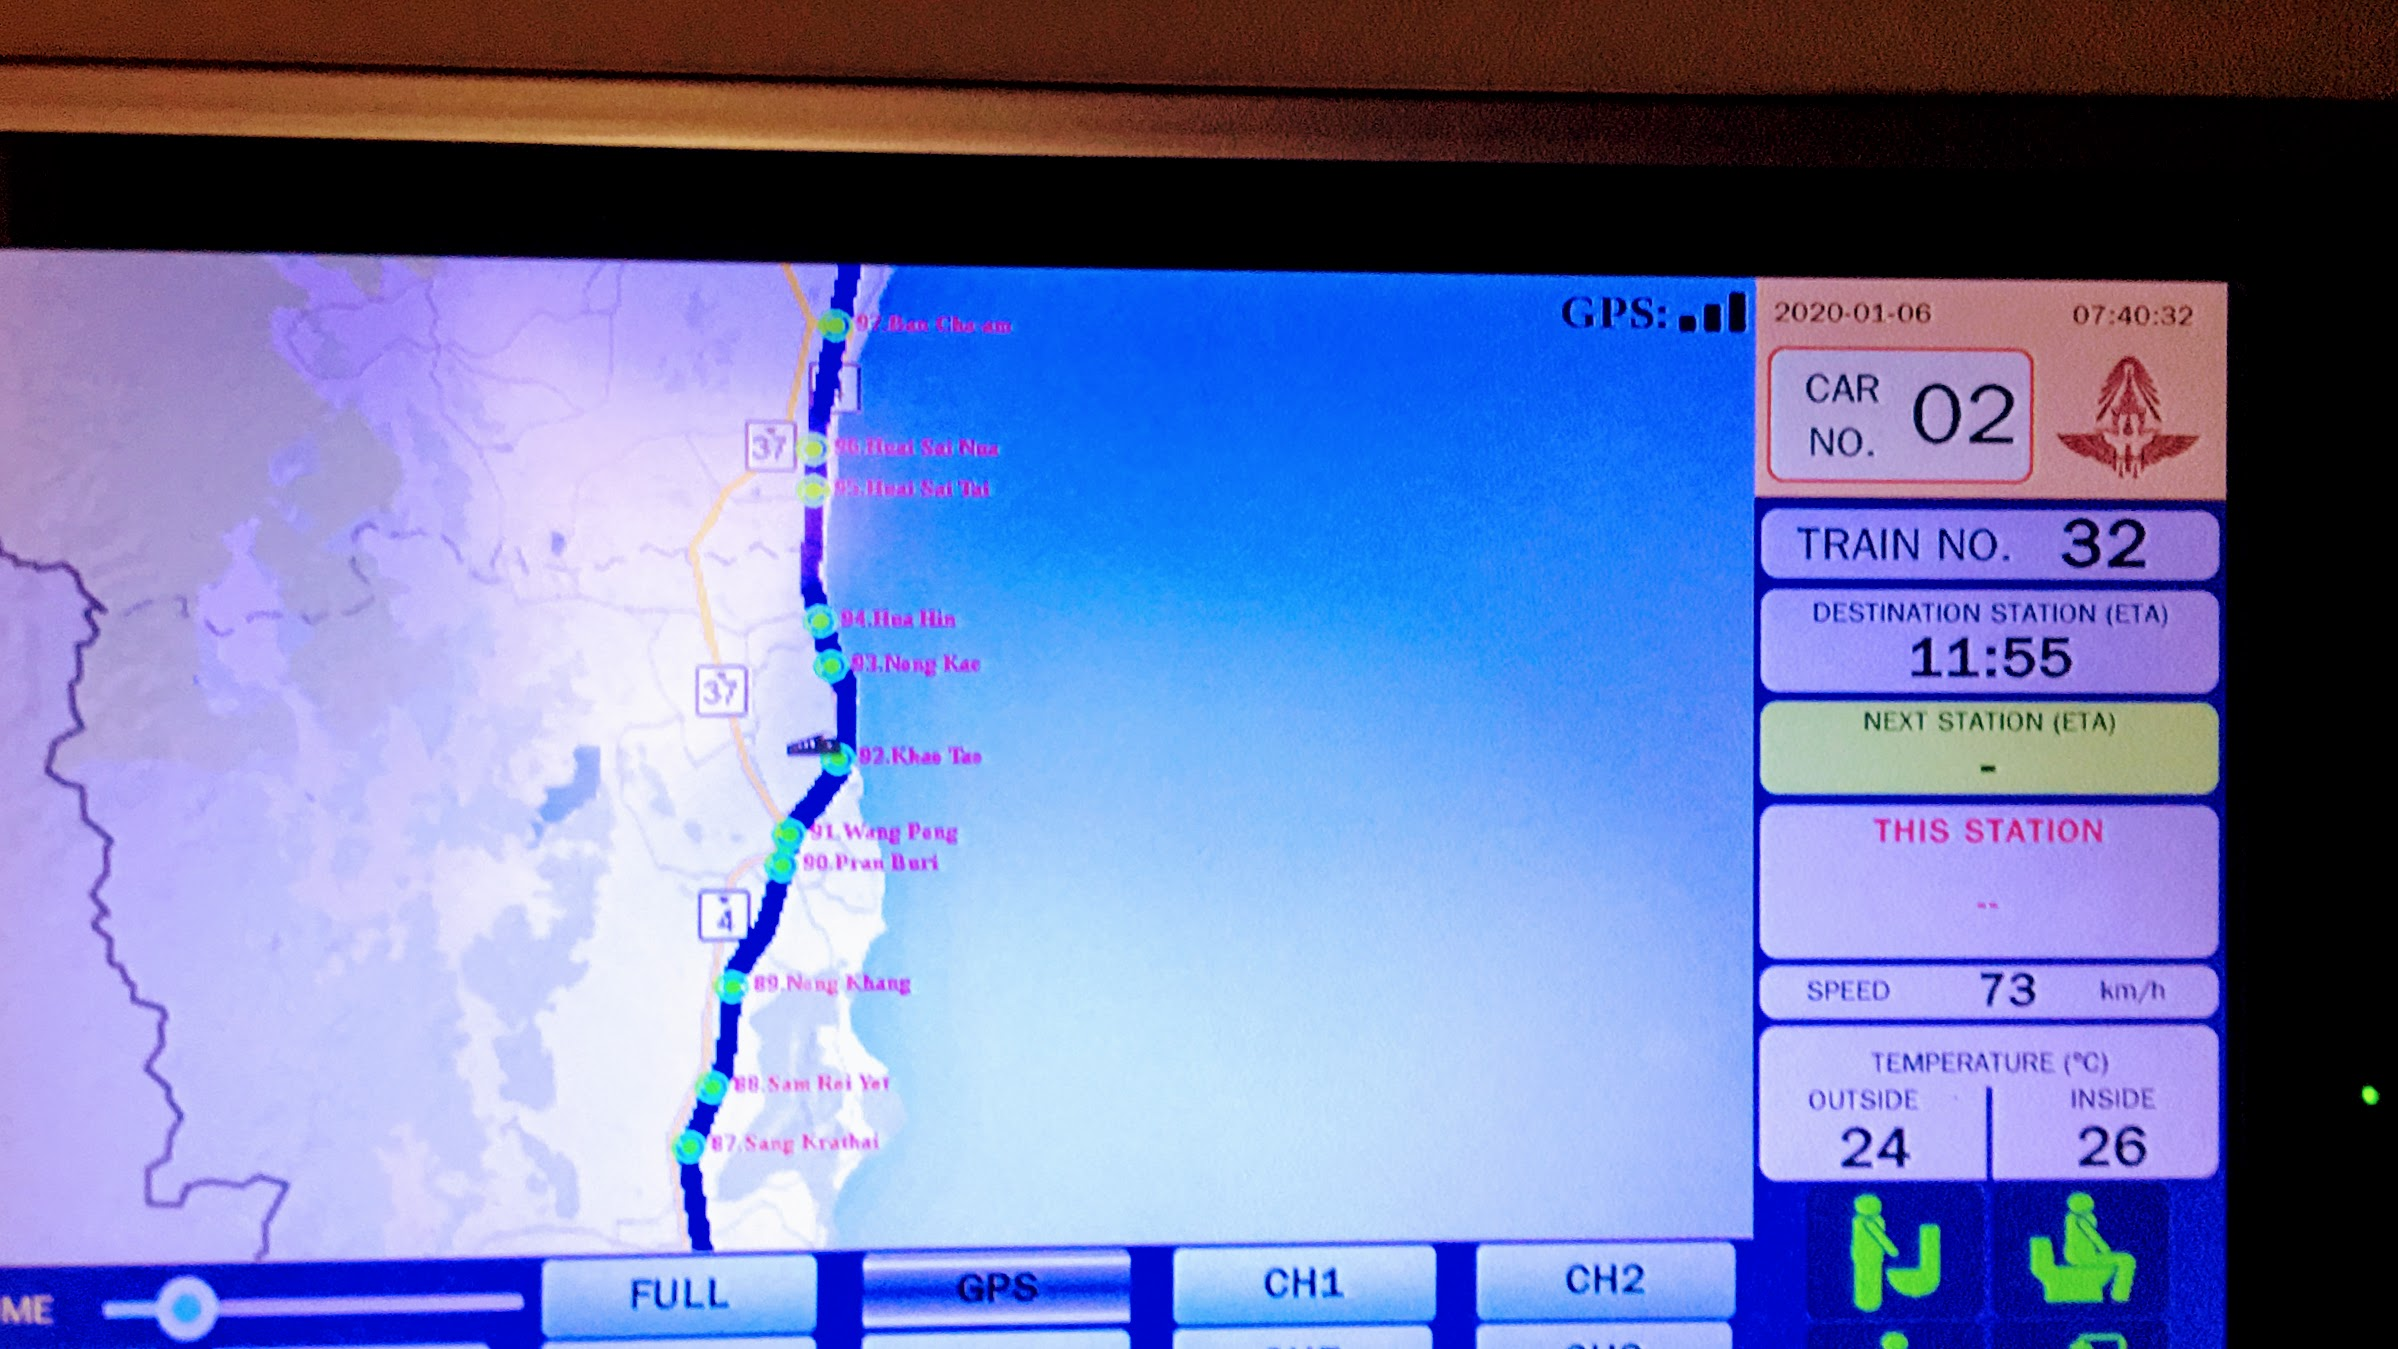 The GPS inside the train - amazing experience on Thailand's first class train.